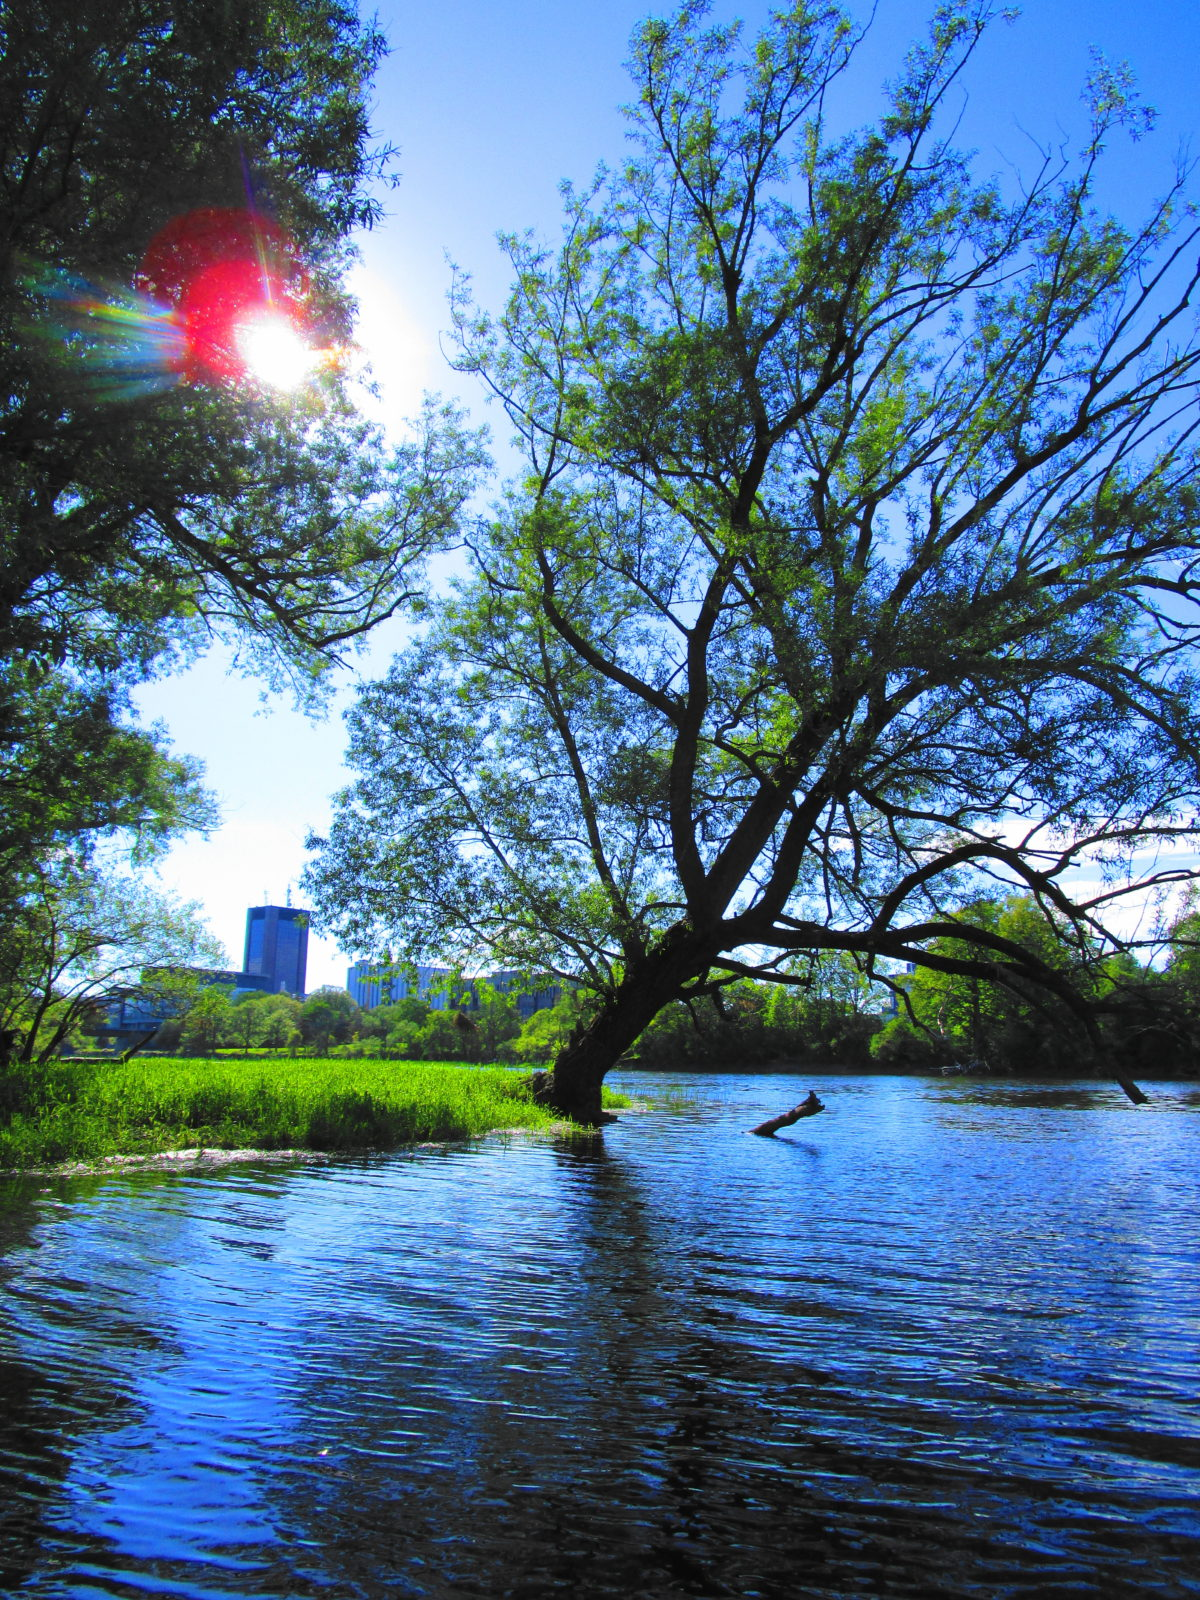 A crack willow leans out over the Rideau River.